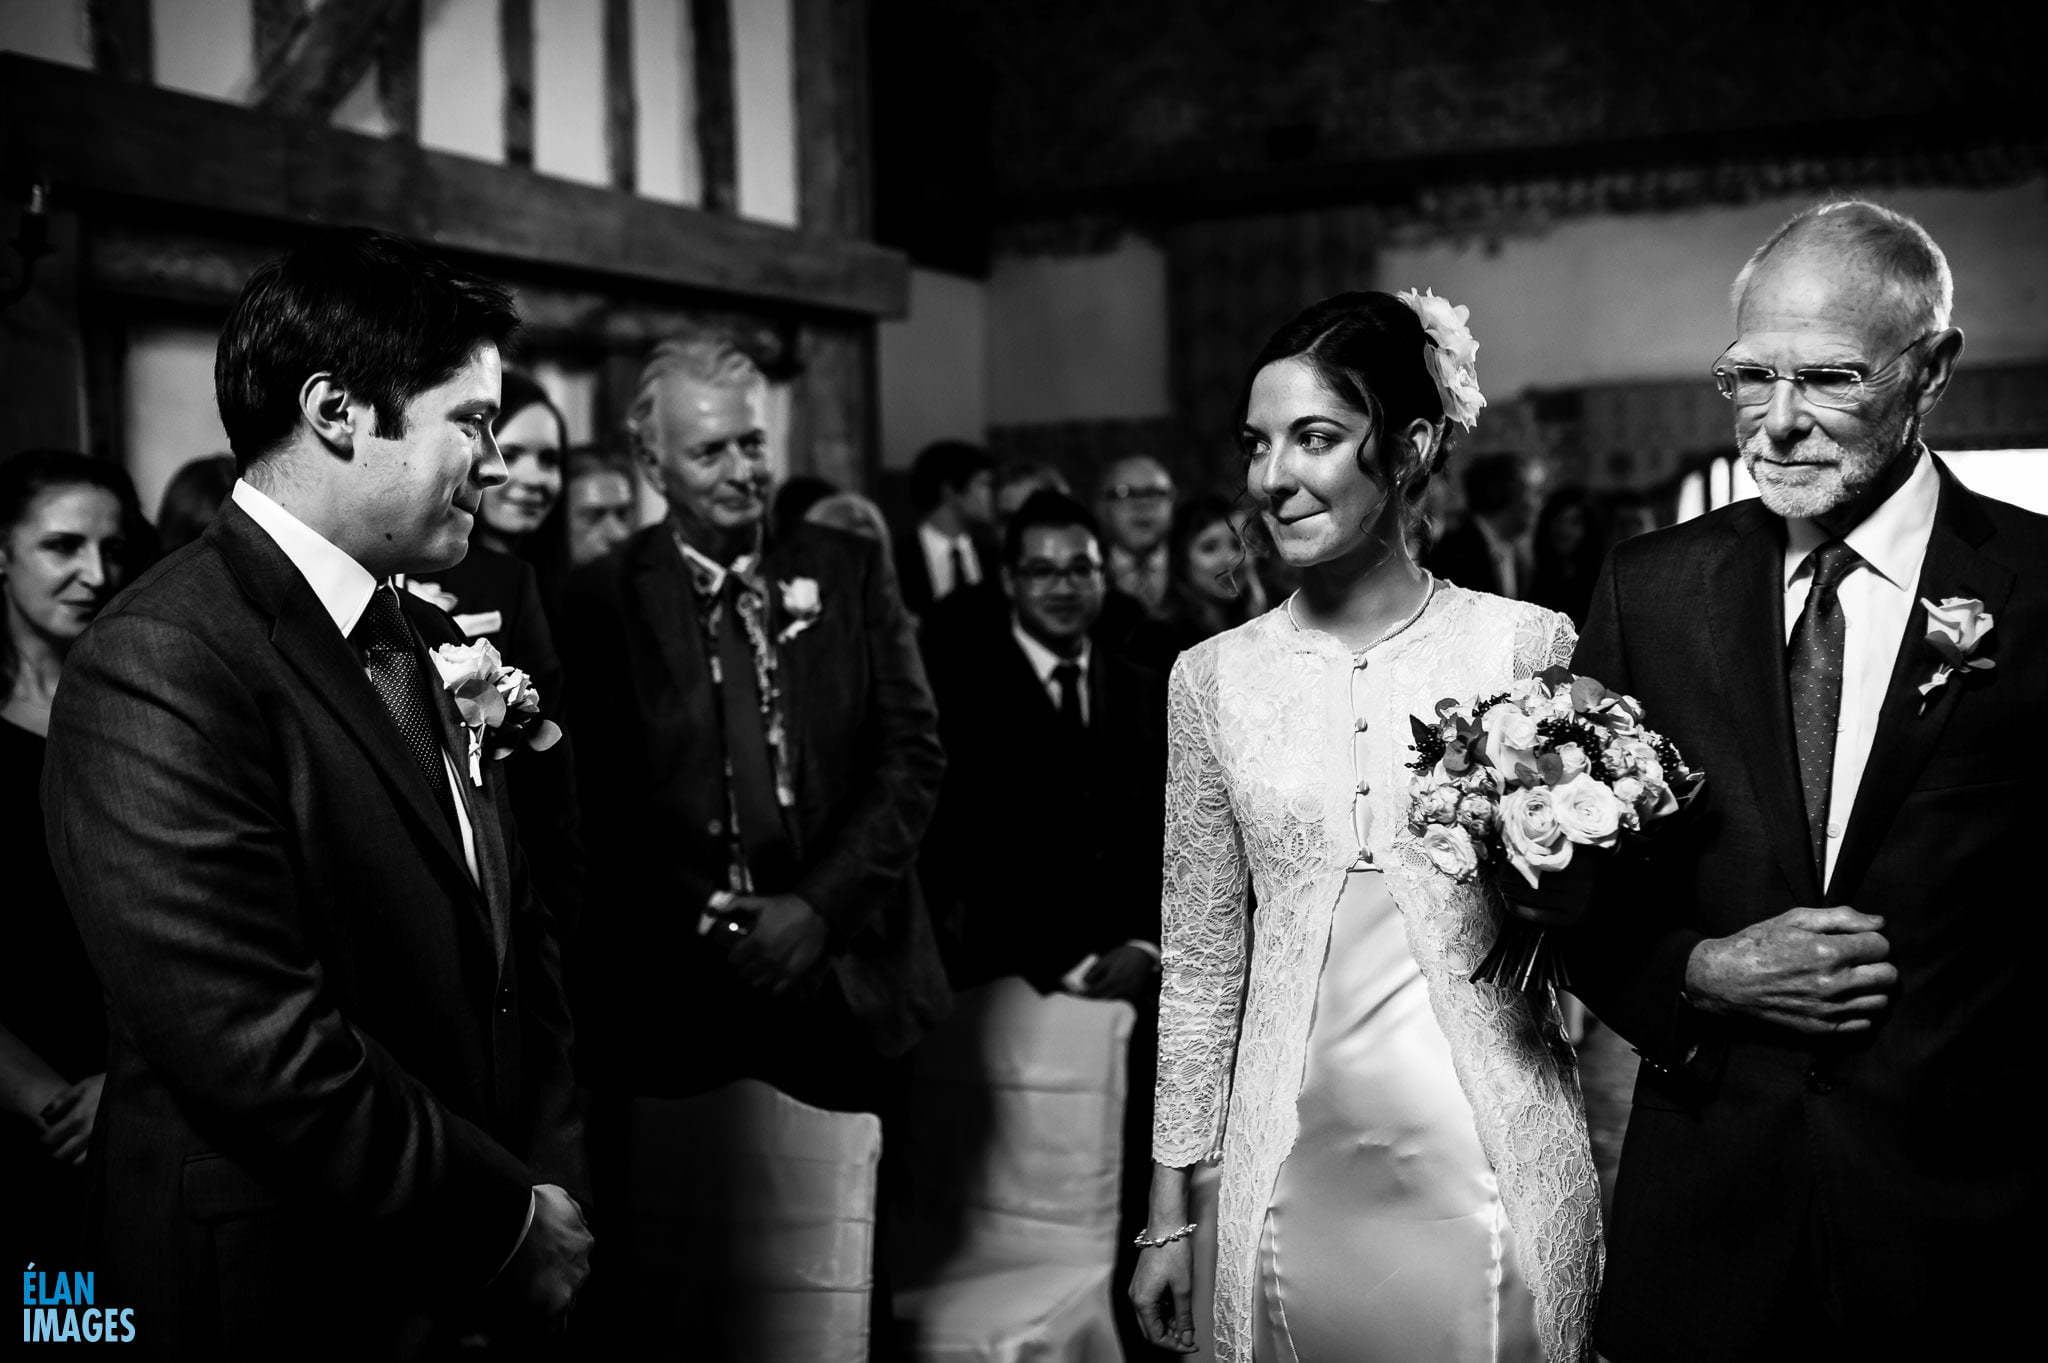 Wedding at Leez Priory, Essex 14